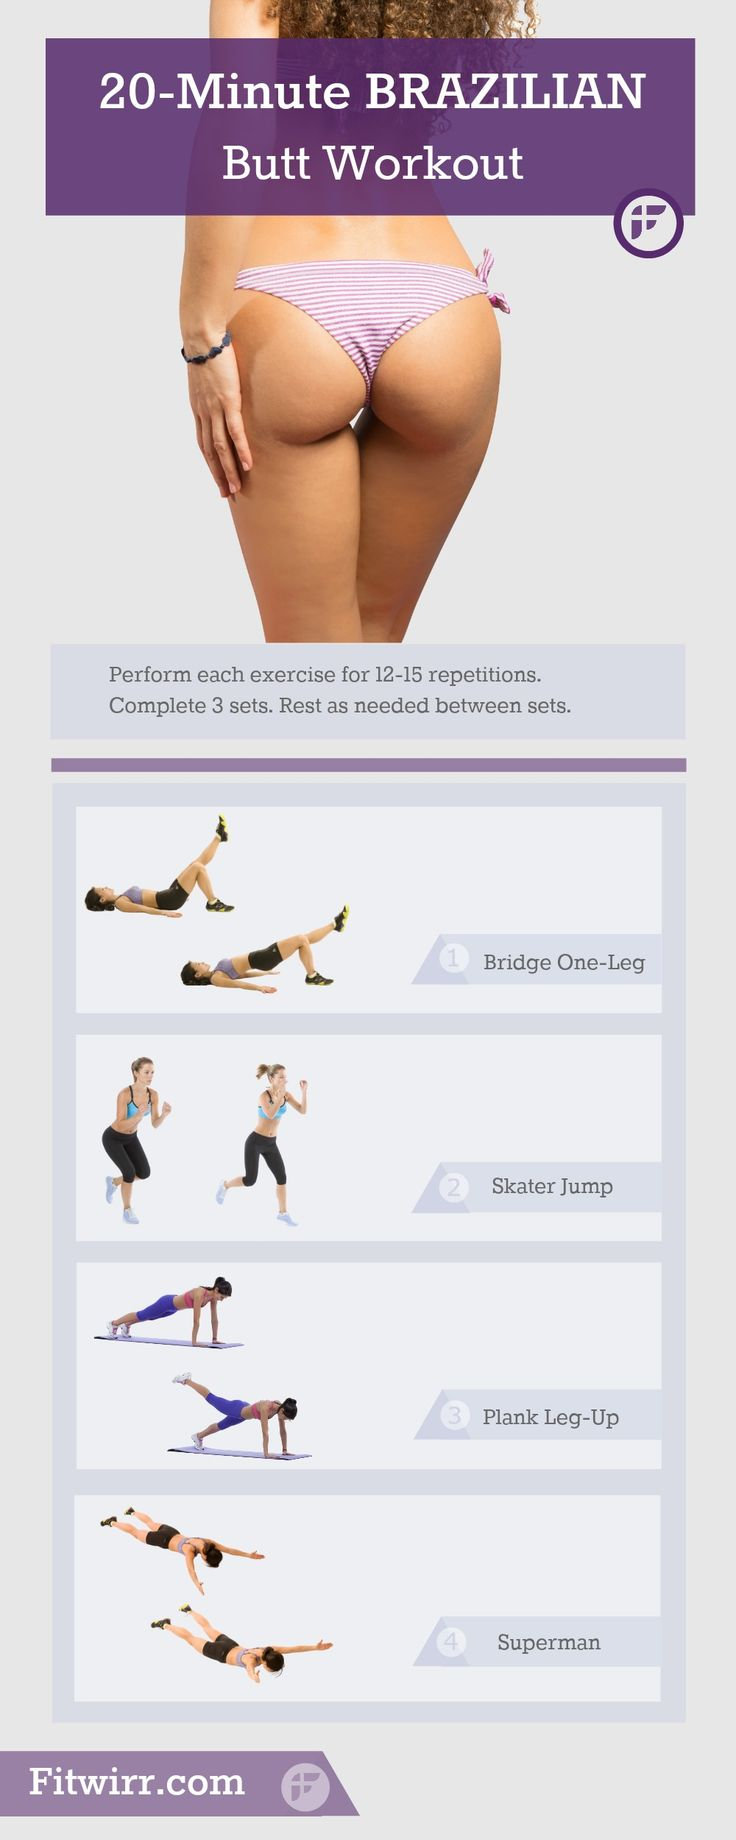 If your butt isn't summer ready yet, this 20-Minute Brazilian Butt Sculpting Workout is all you need to get it shaped up just in time. No-equipment, no-gym and no-squat.  4 simple bodyweight exercises you can do at home. #buttliftworkout #bikinibutt #buttexercises